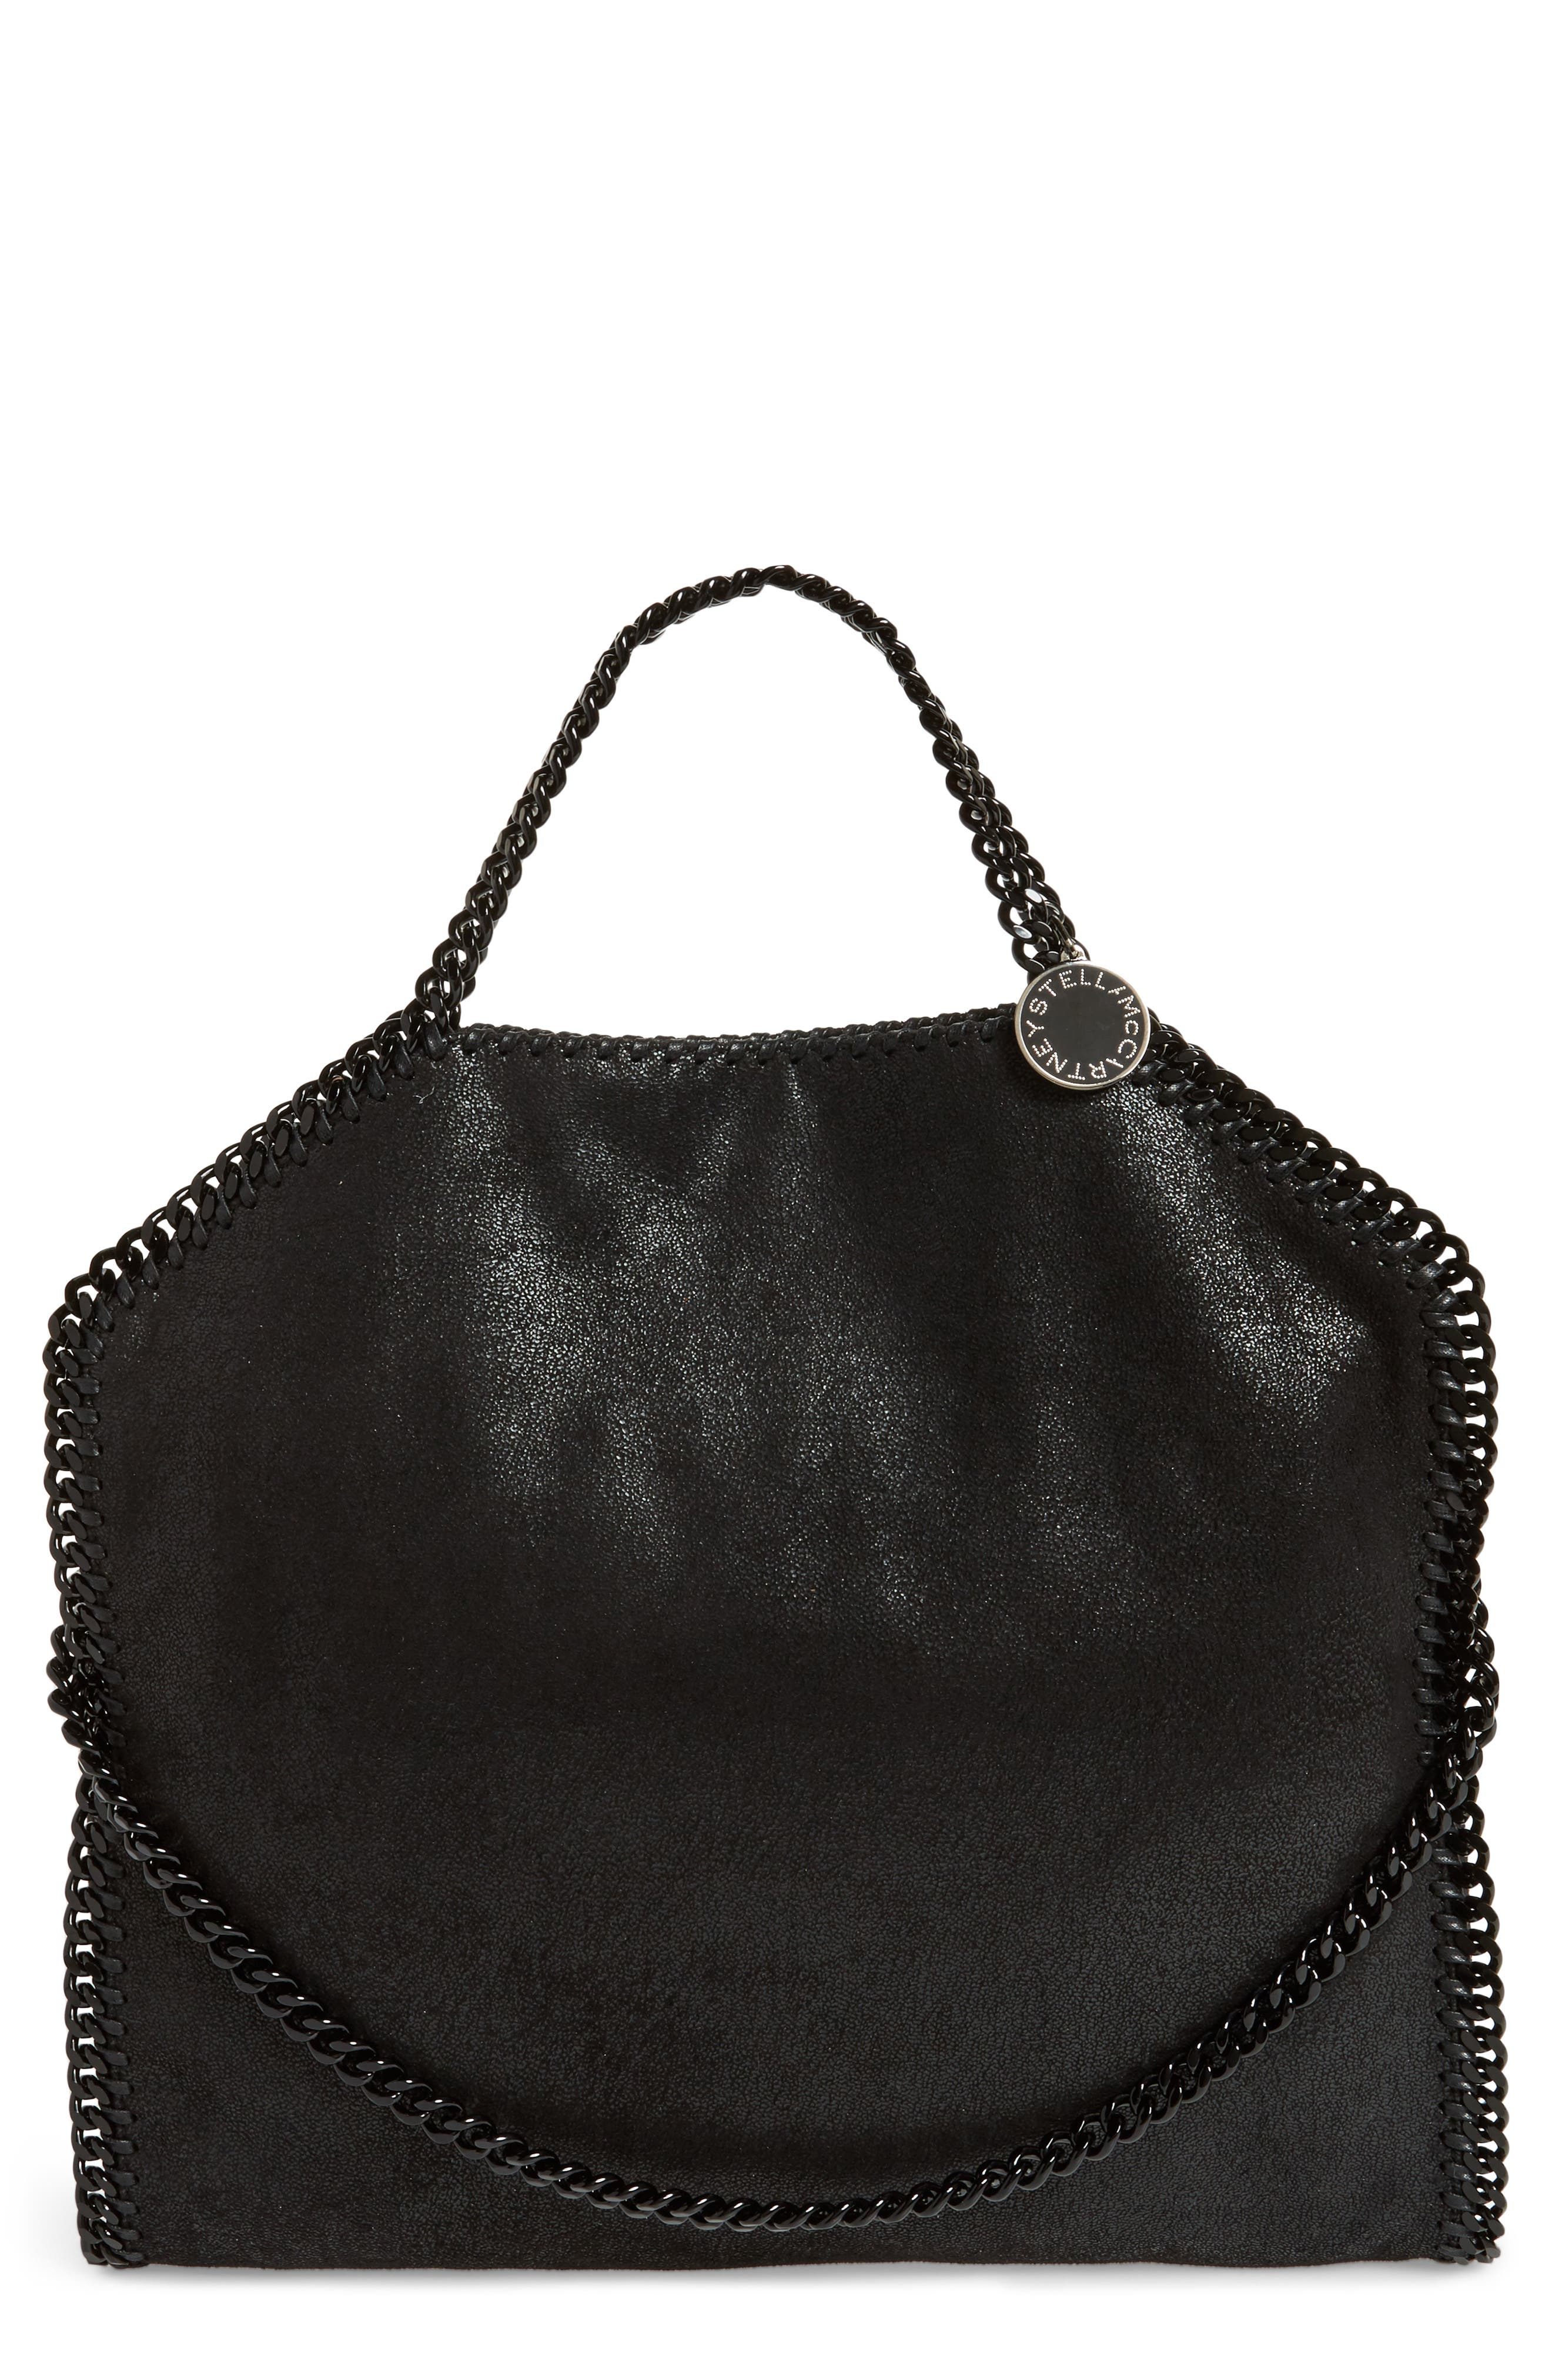 Alternate Image 1 Selected - Stella McCartney Falabella Shaggy Deer Faux Leather Tote